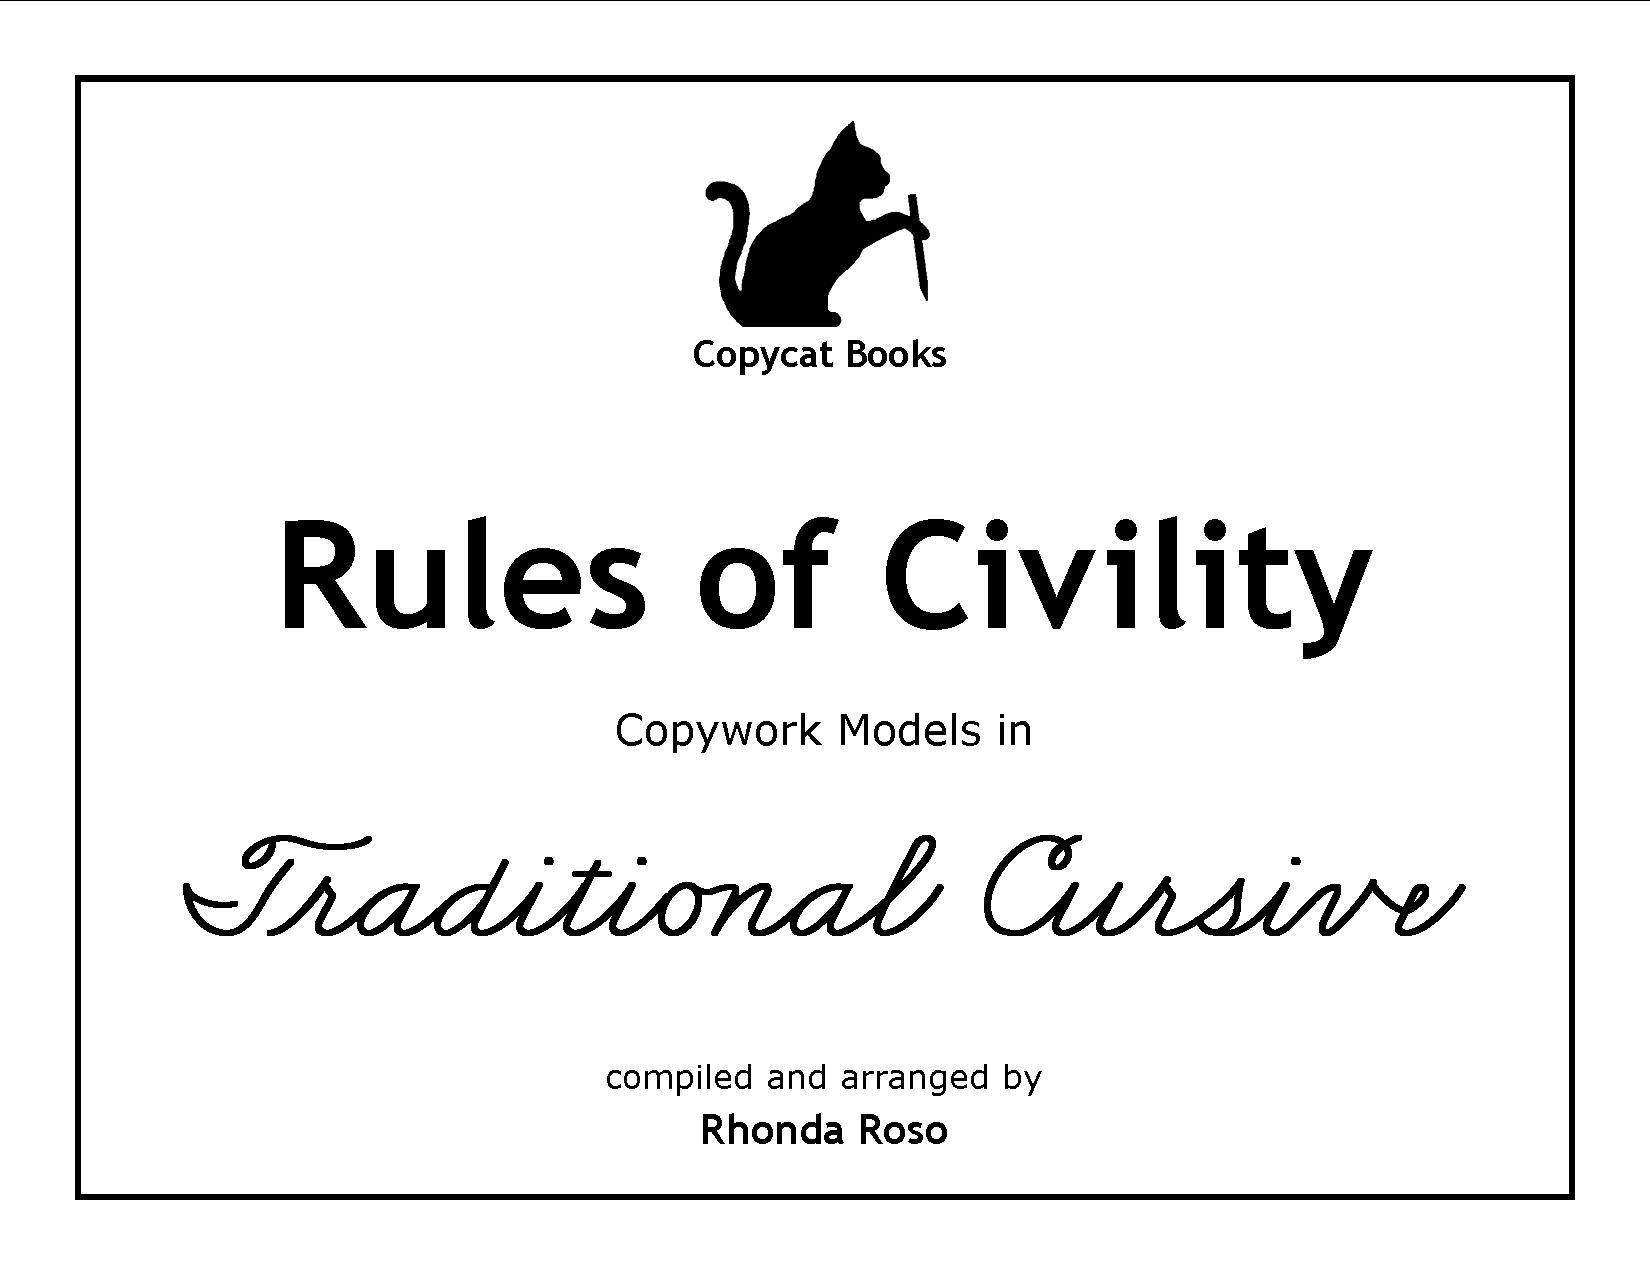 110 rules of civility